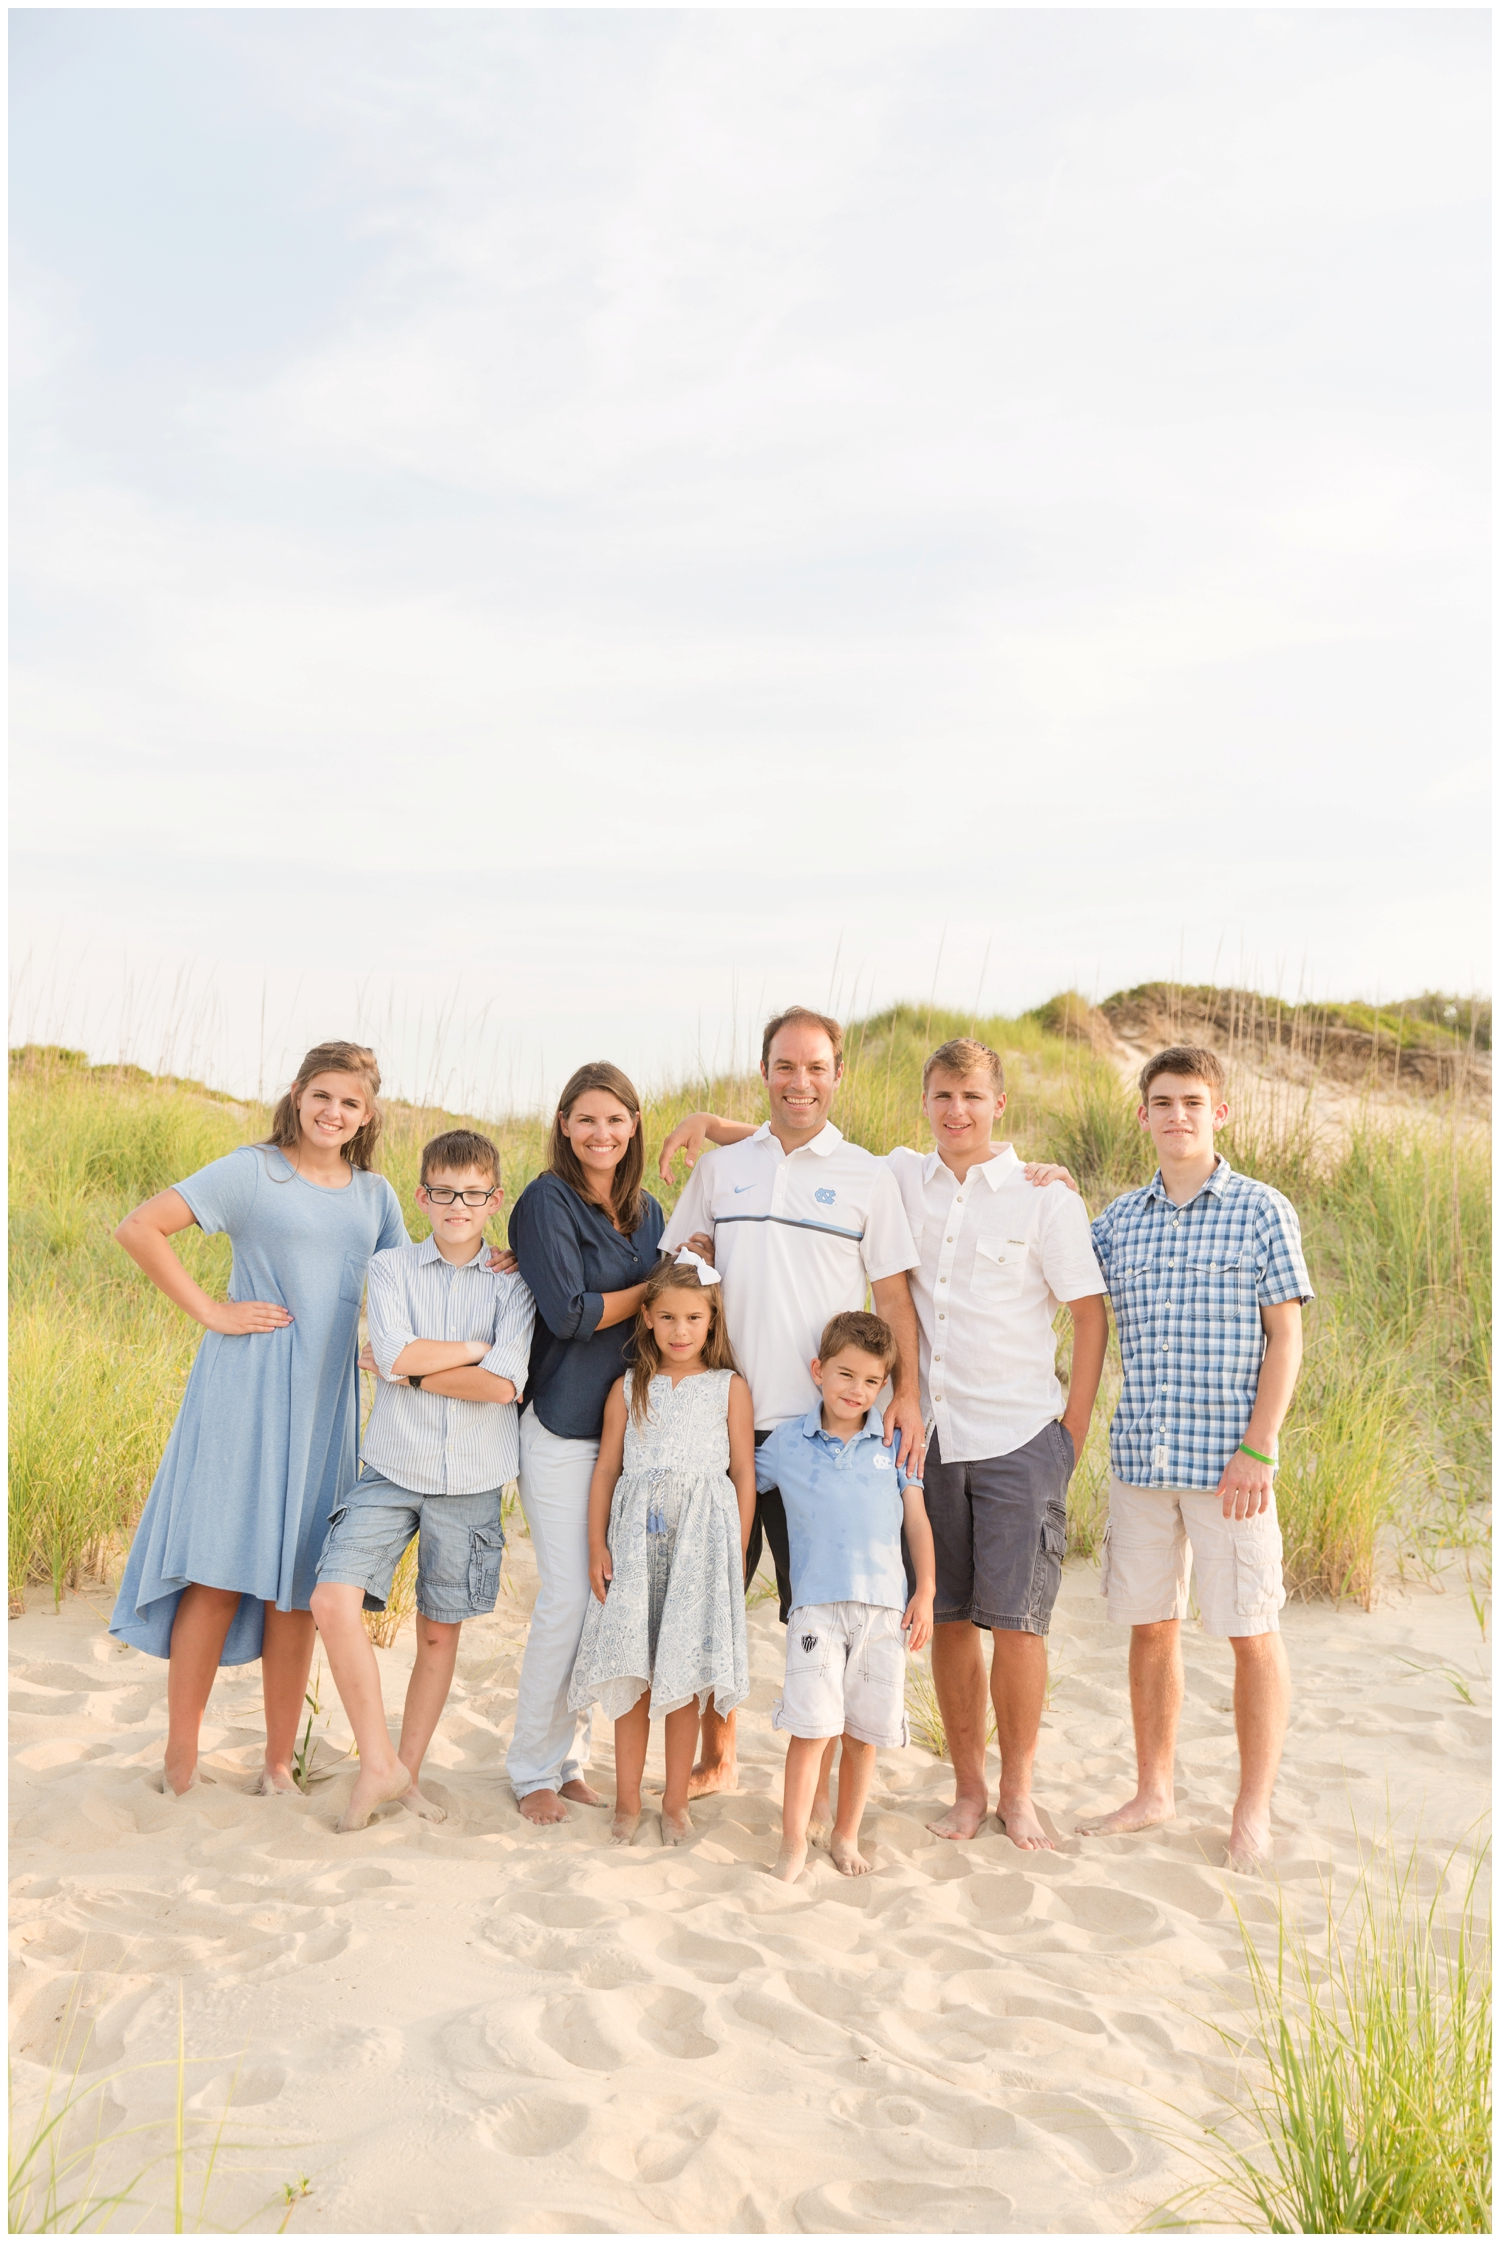 elovephotos virginia beach sandbridge family photographer_0884.jpg